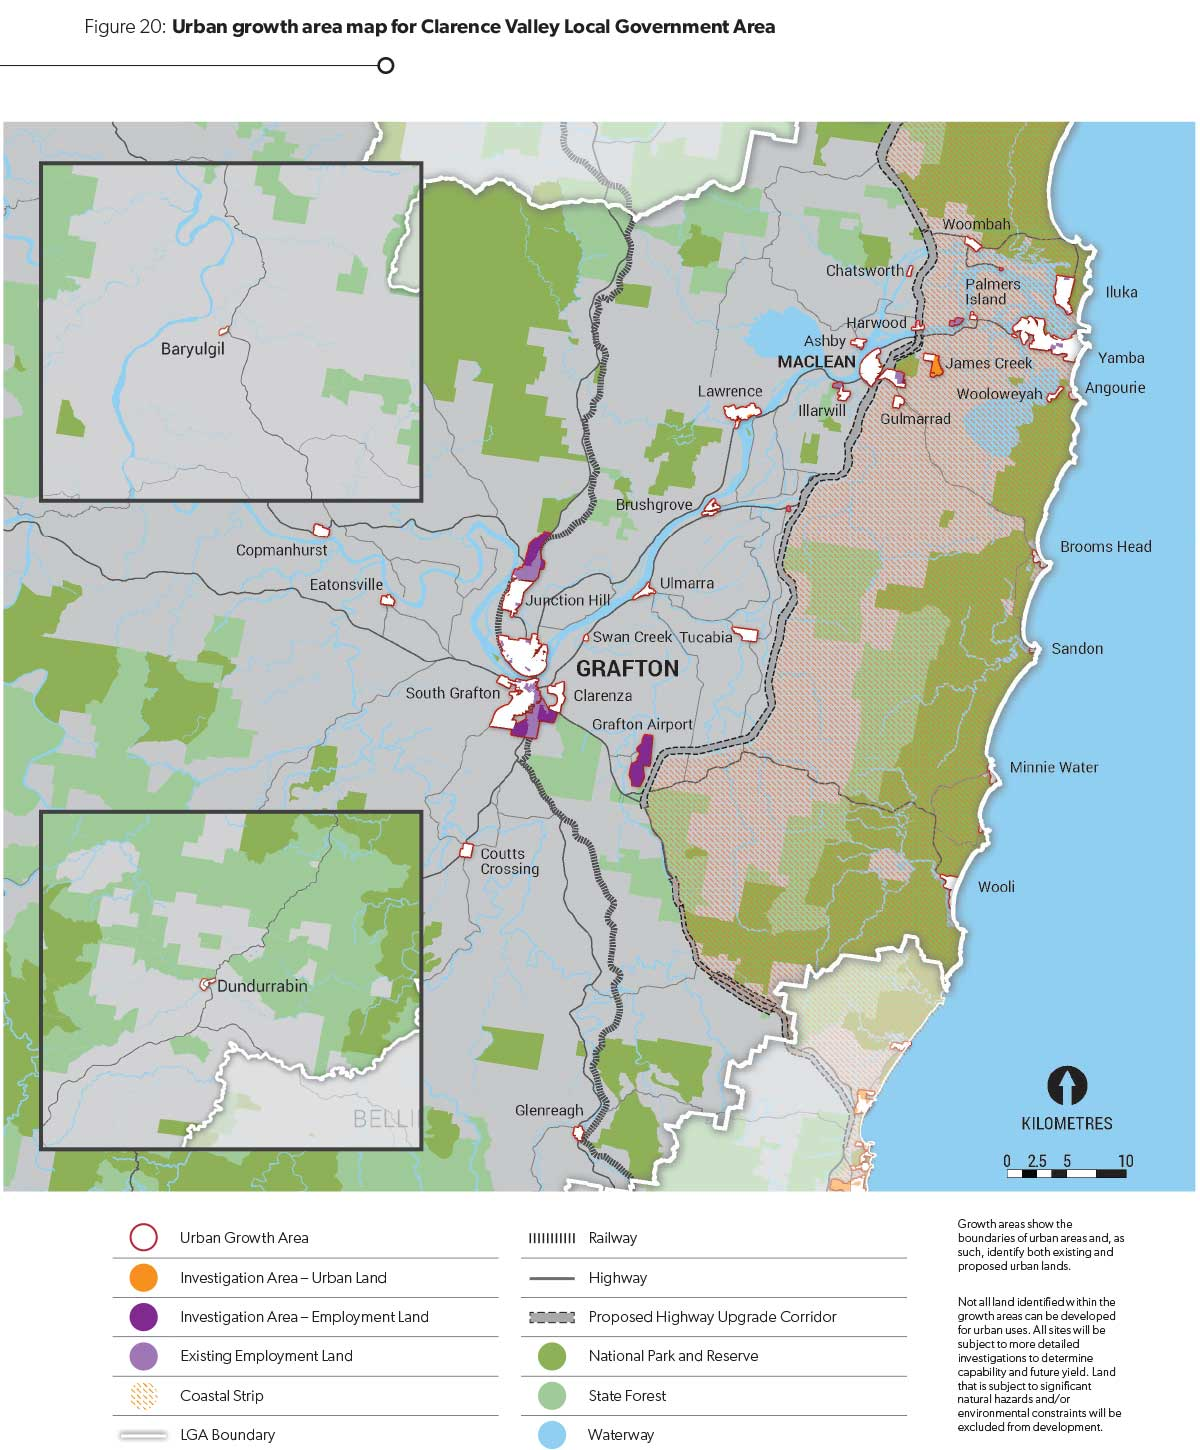 North Coast Region - Maps - Department of Planning and Environment